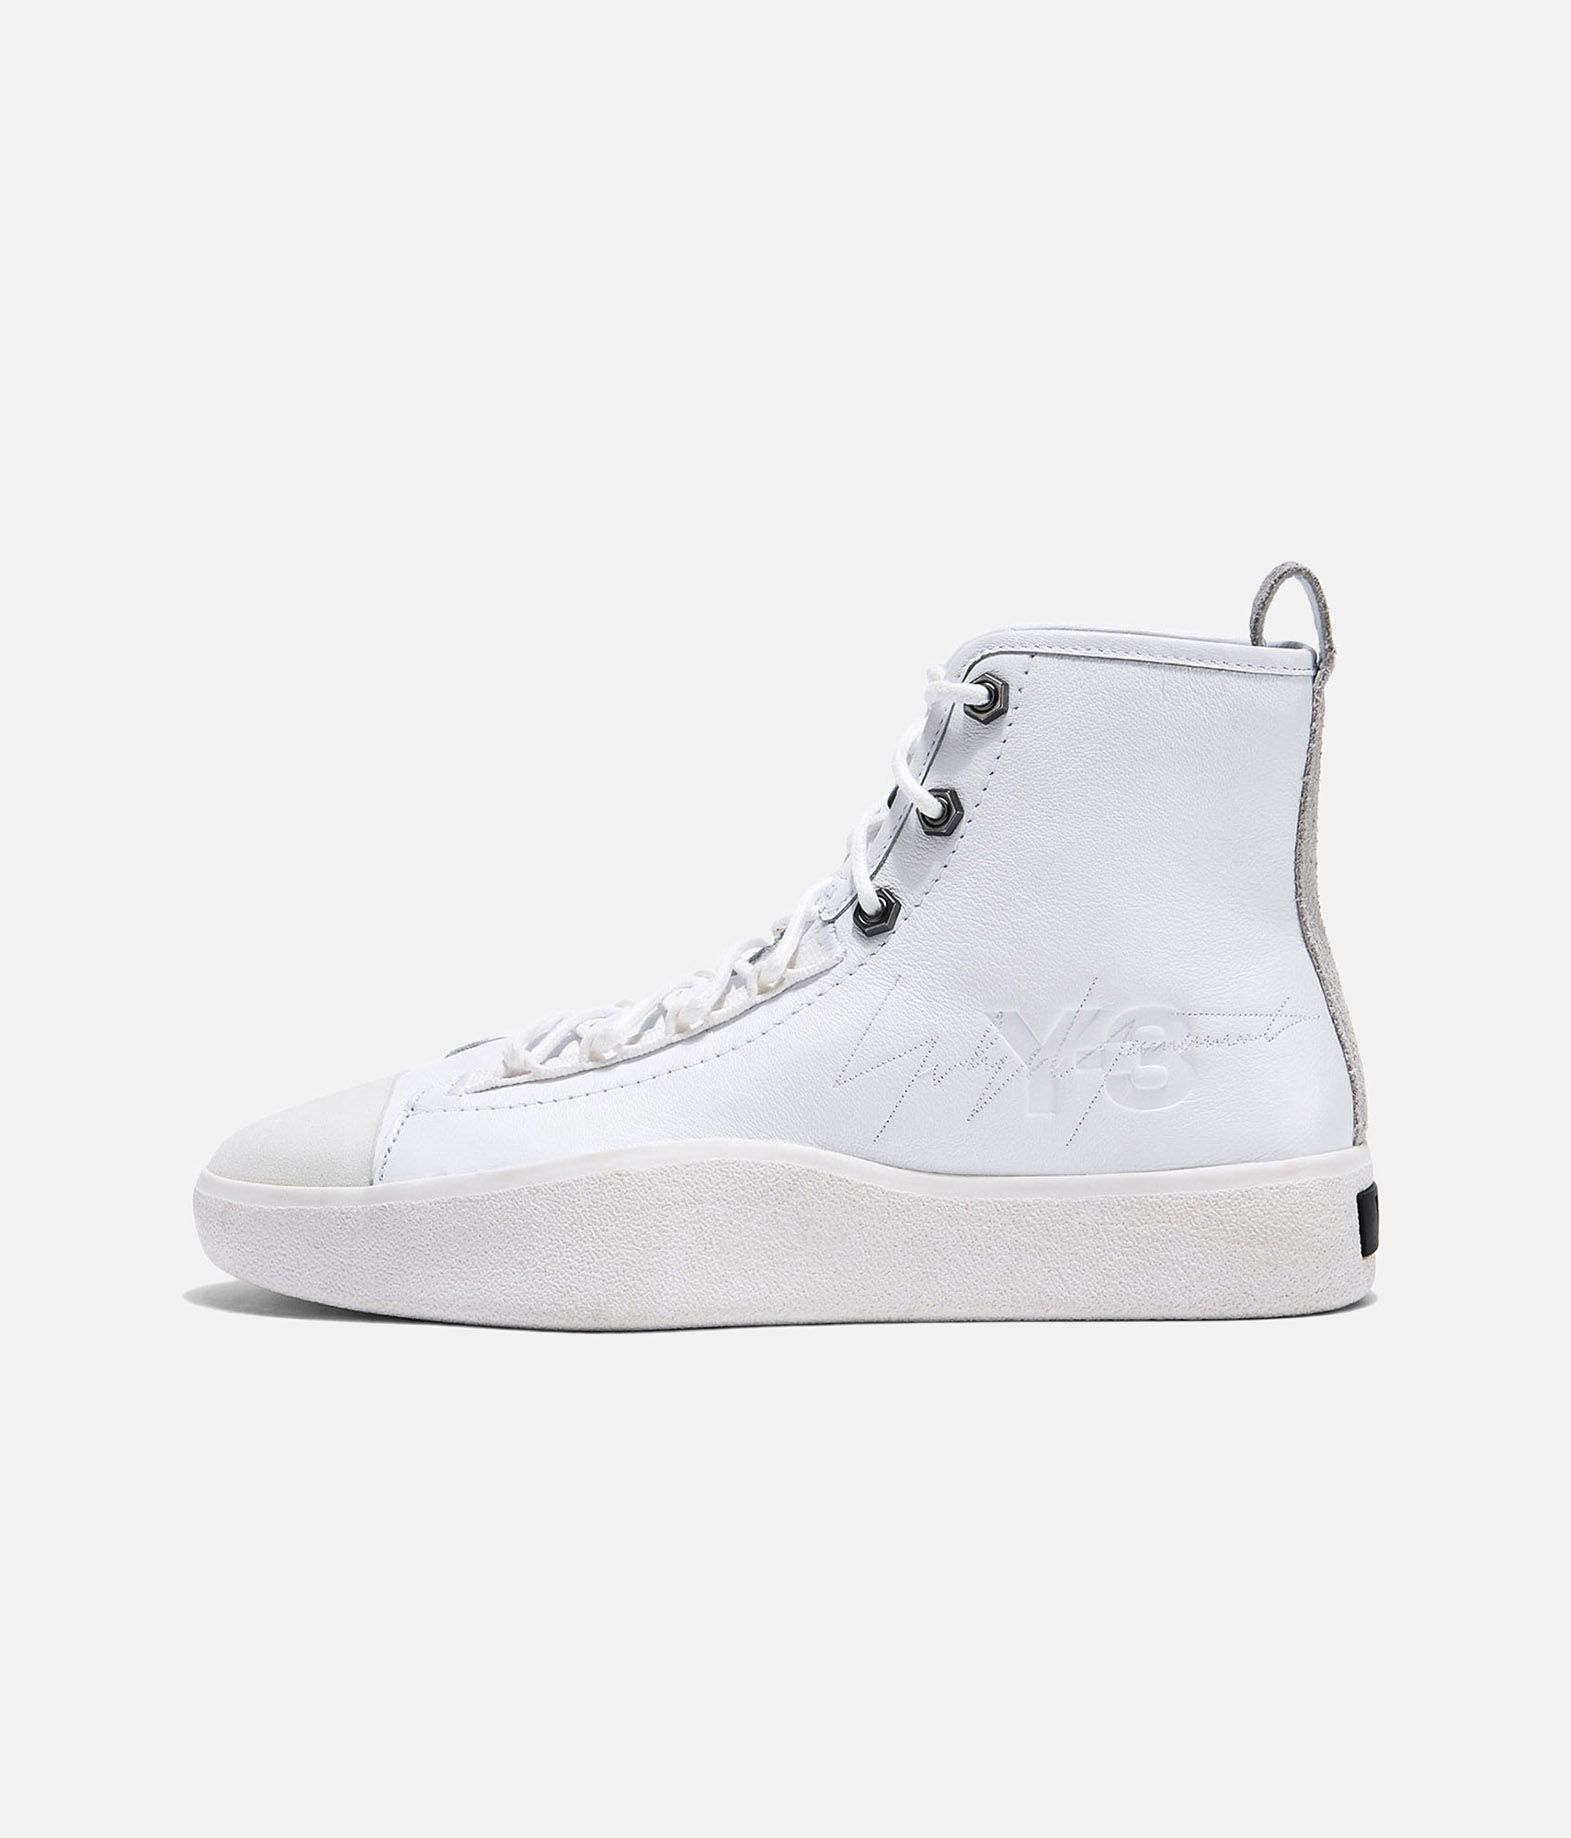 02da08258169 ... Y-3 Y-3 Bashyo II High-top sneakers E f ...